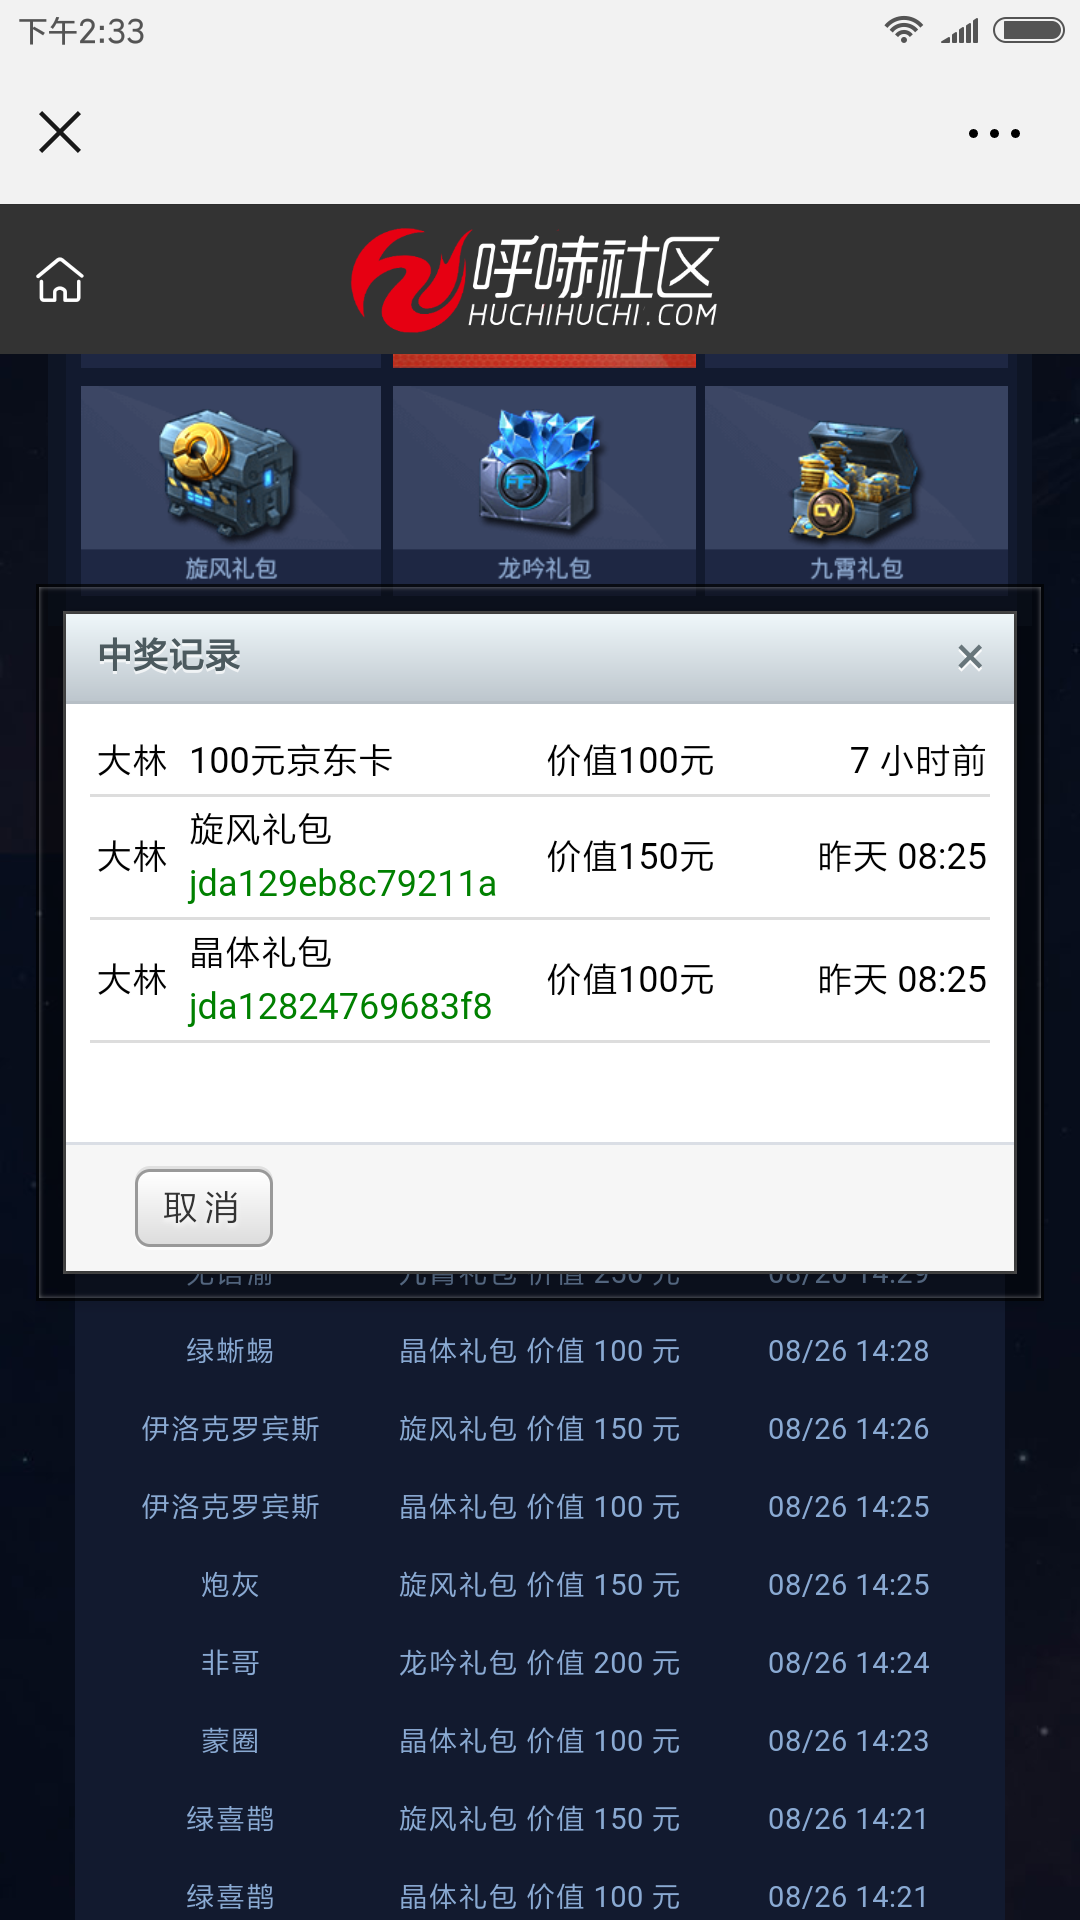 Screenshot_2018-08-26-14-33-25-745_com.tencent.mm.png